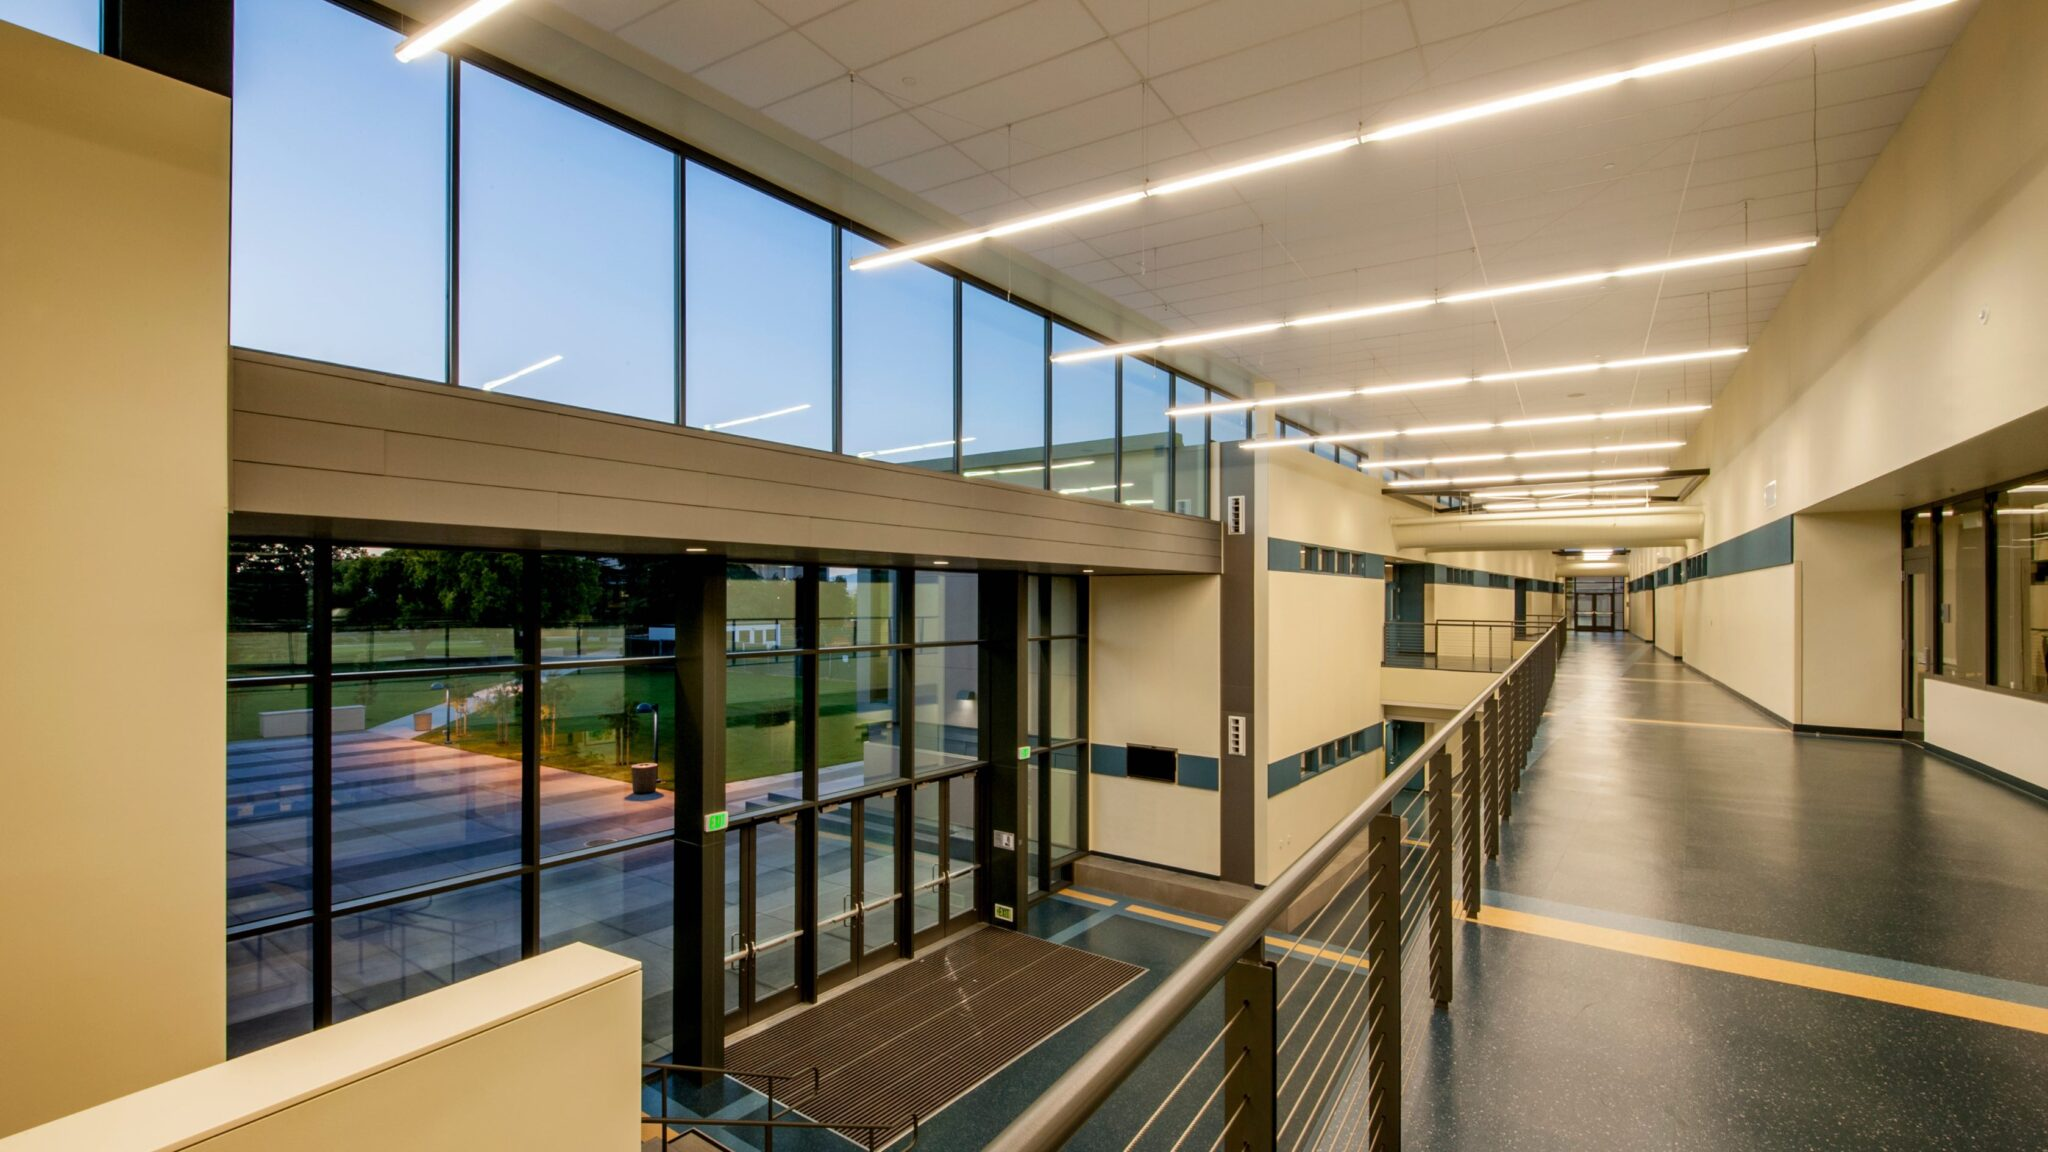 School Security Upgrades Addressed By Campus Security Magazine - Safety and Security Window Film in Western Michigan